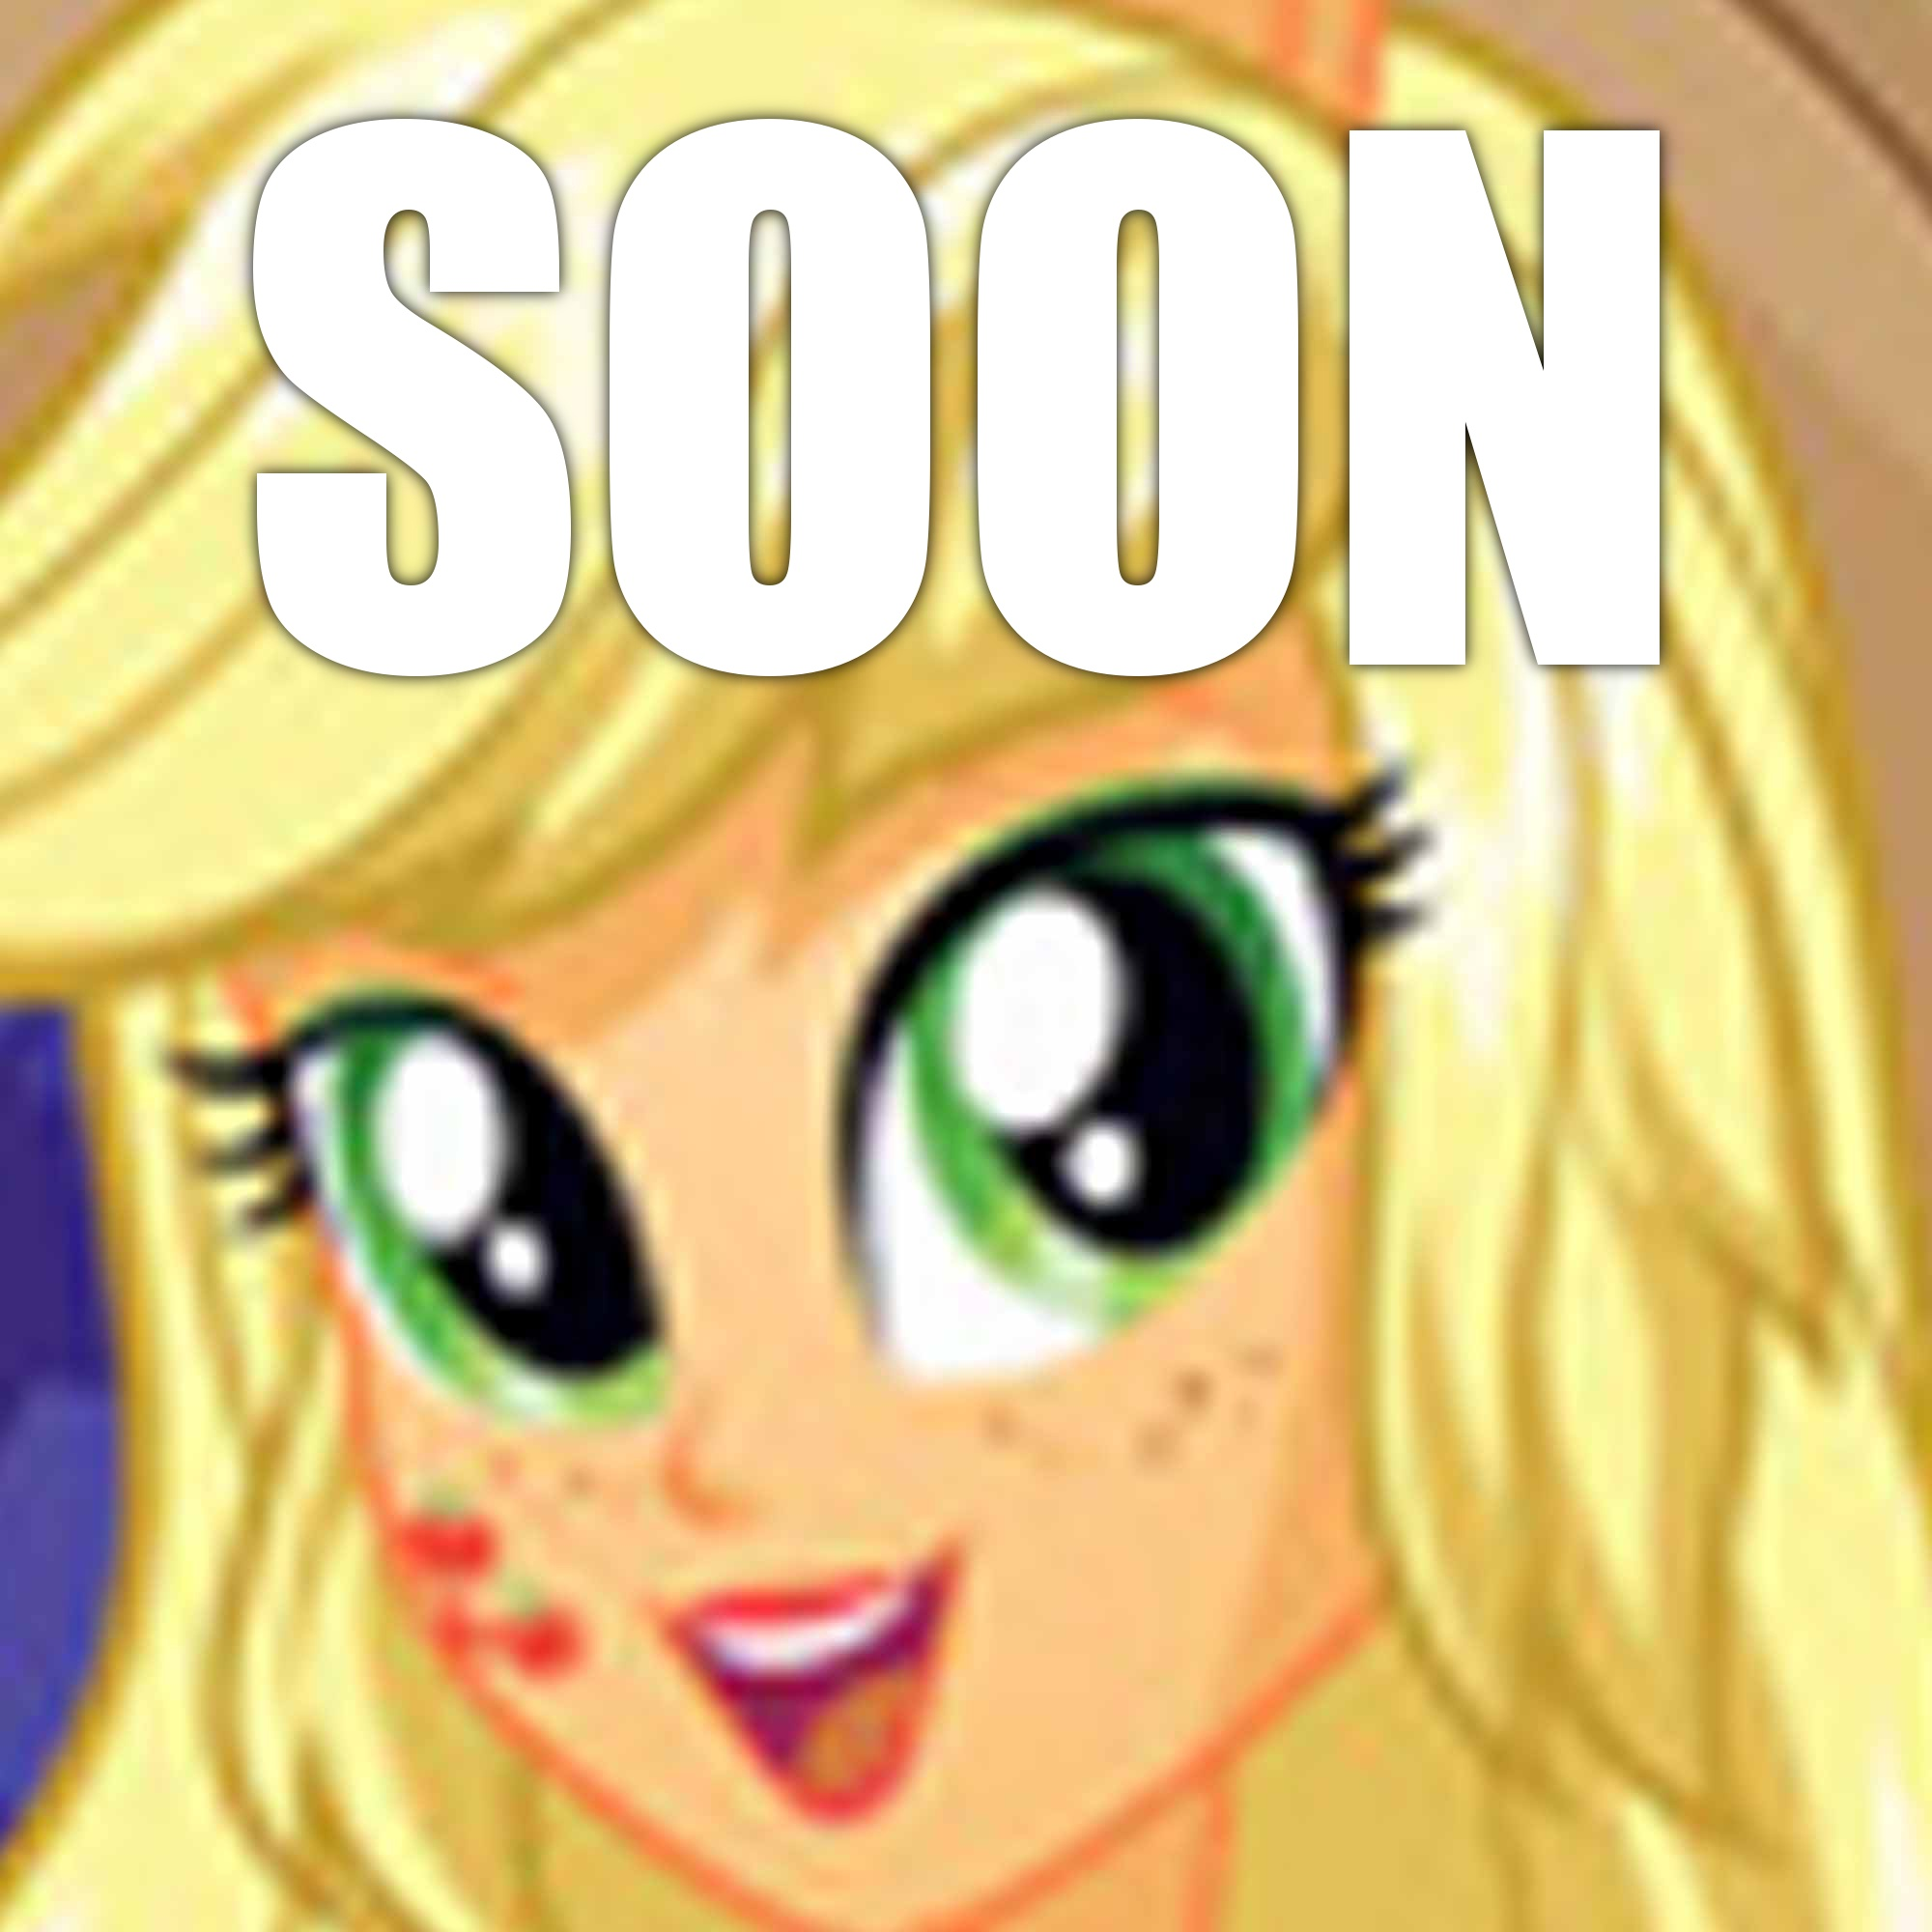 260203__safe_applejack_image-macro_equestria-girls_soon.jpg